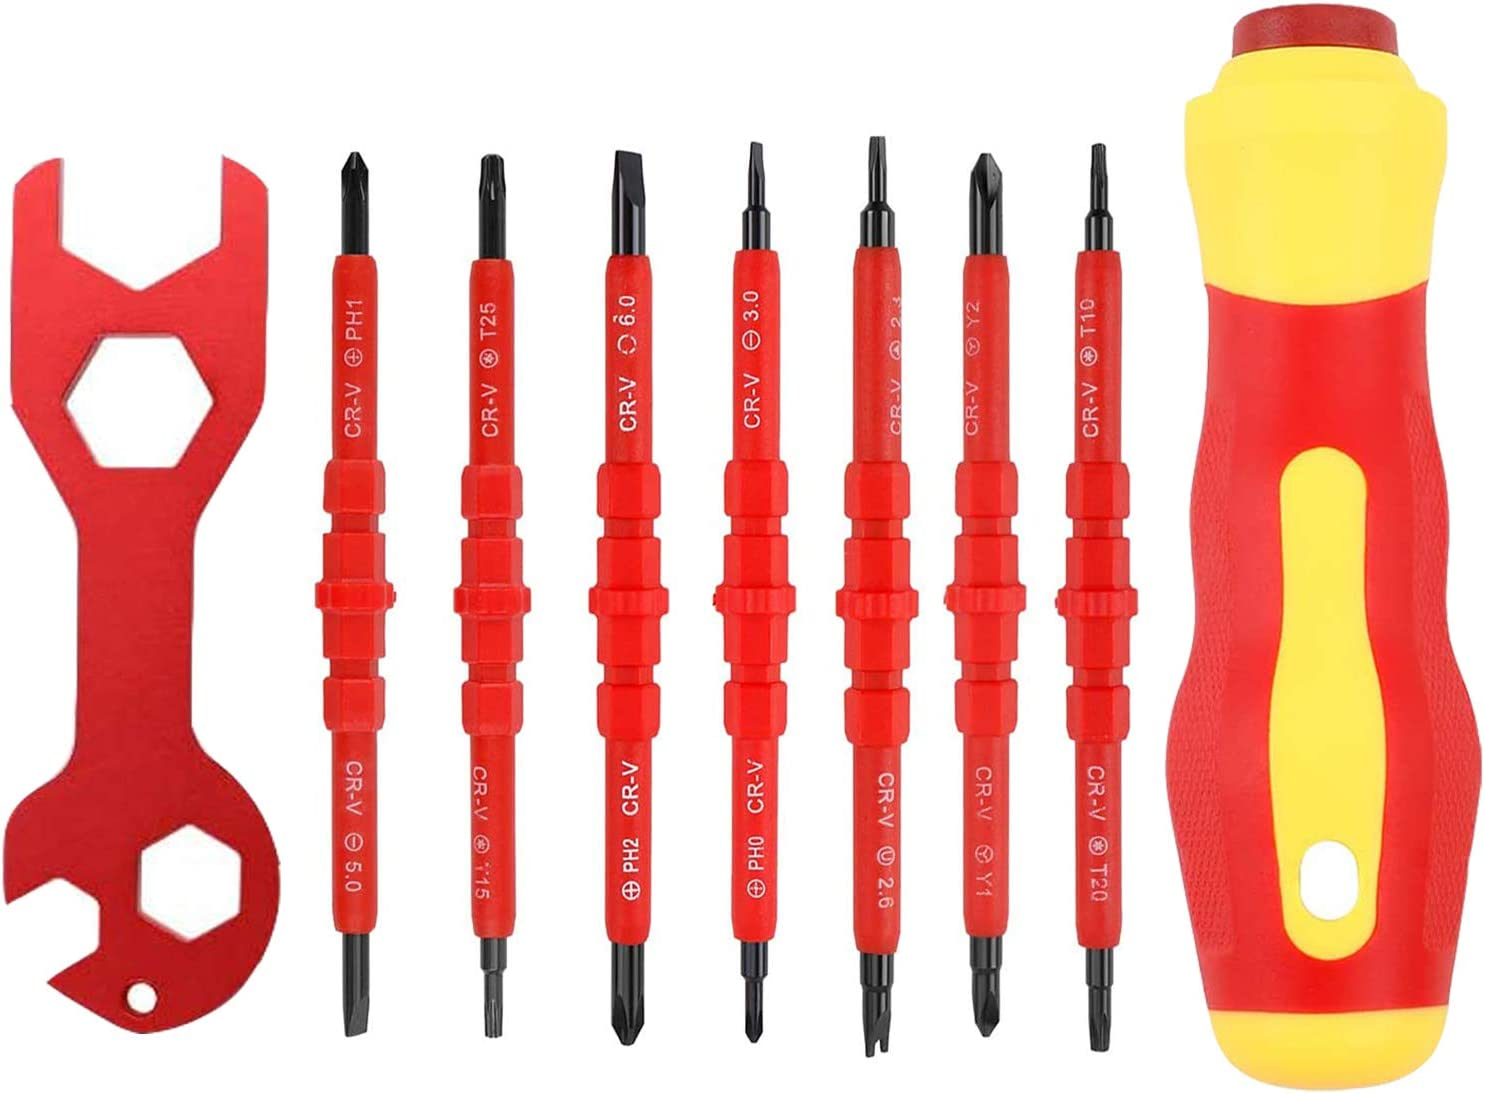 Magnetic Screwdriver Set Multi Electrician Insulated Screwdriver Set with the Wrench for Home Appliance and Other Electronic Devices